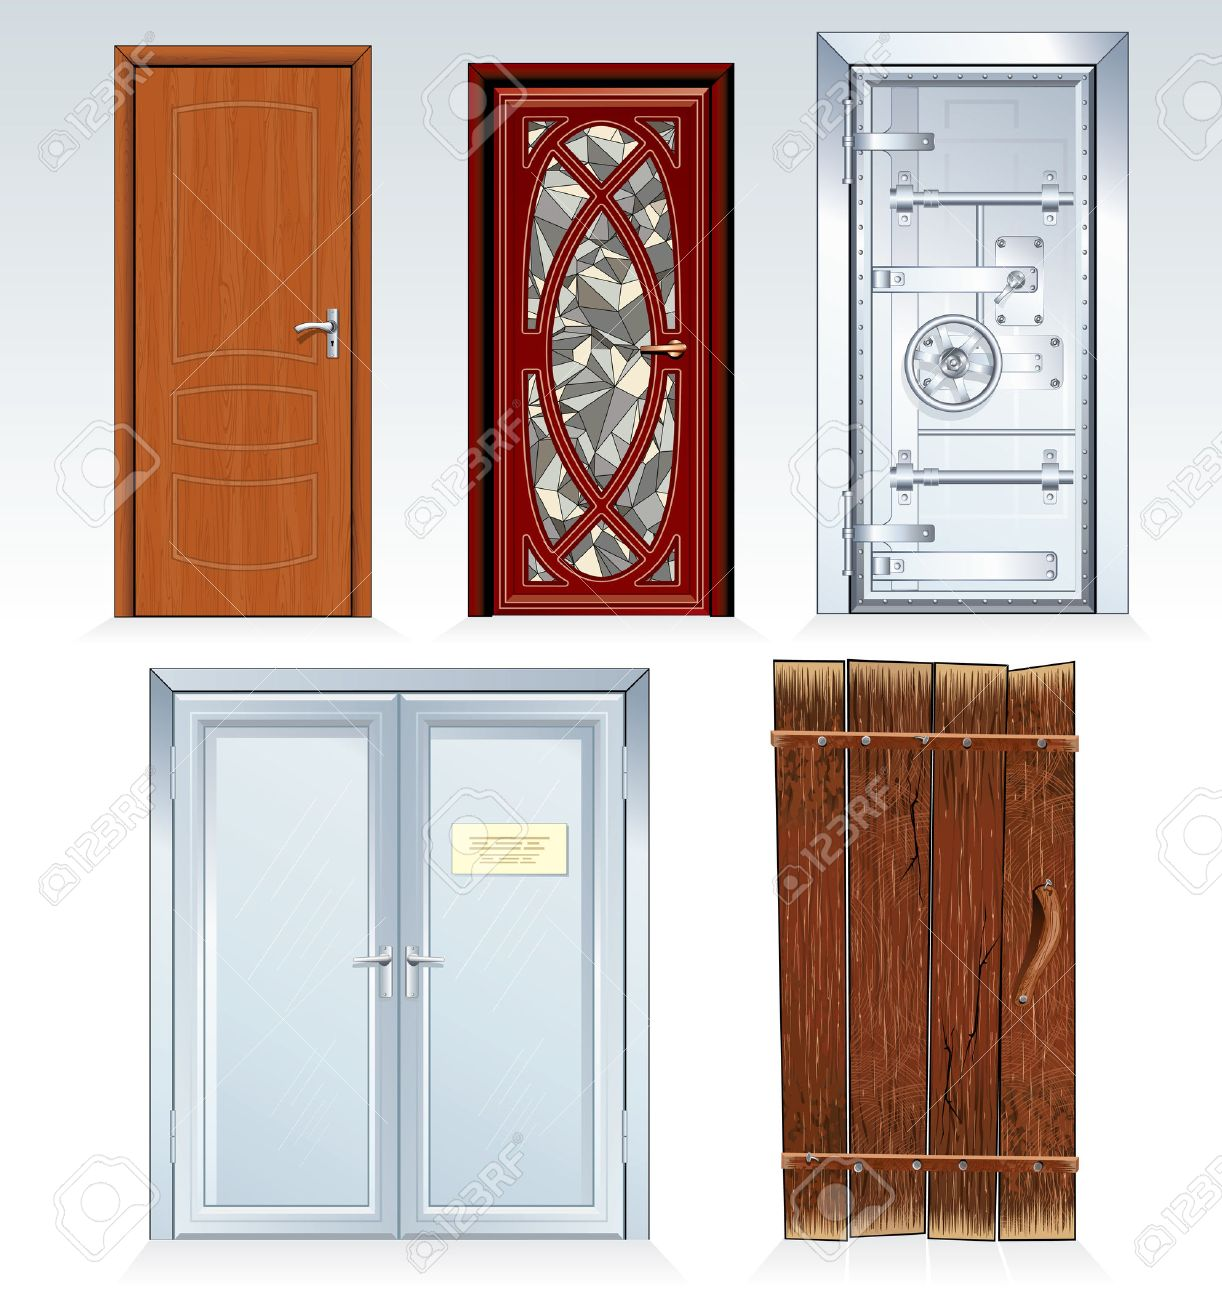 Collection of standard Doors -inc classic wooden door front door bank vault  sc 1 st  123RF Stock Photos & Collection Of Standard Doors -inc Classic Wooden Door Front ... pezcame.com